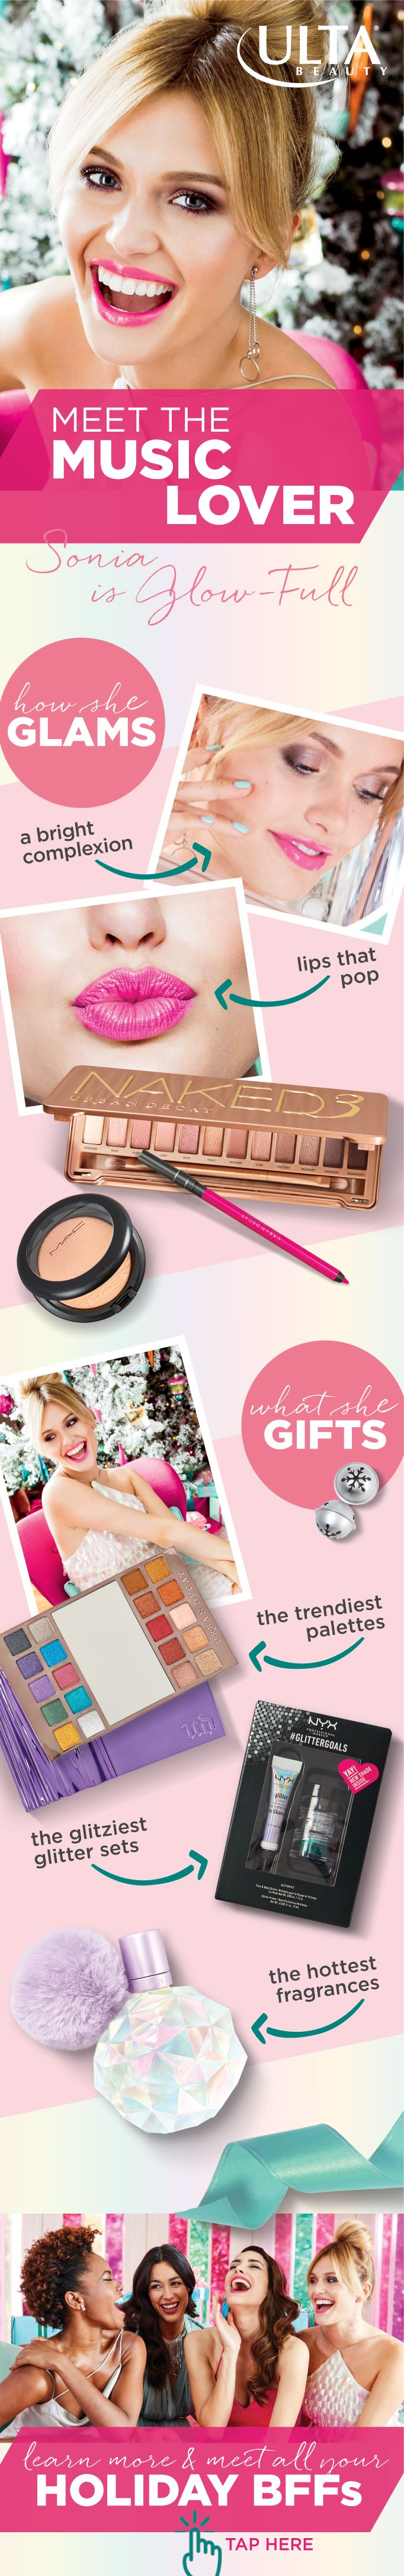 Gift, glam and get to know your Holiday BFFs.Meet the Music Lover. If it's trending, she has it. Her look? Glow-full with a bright complexion and lips that pop. And her gifts are the ones everyone wants: on-trend palettes, fragrances and gift sets from brands like Urban Decay, NYX and Ariana Grande.